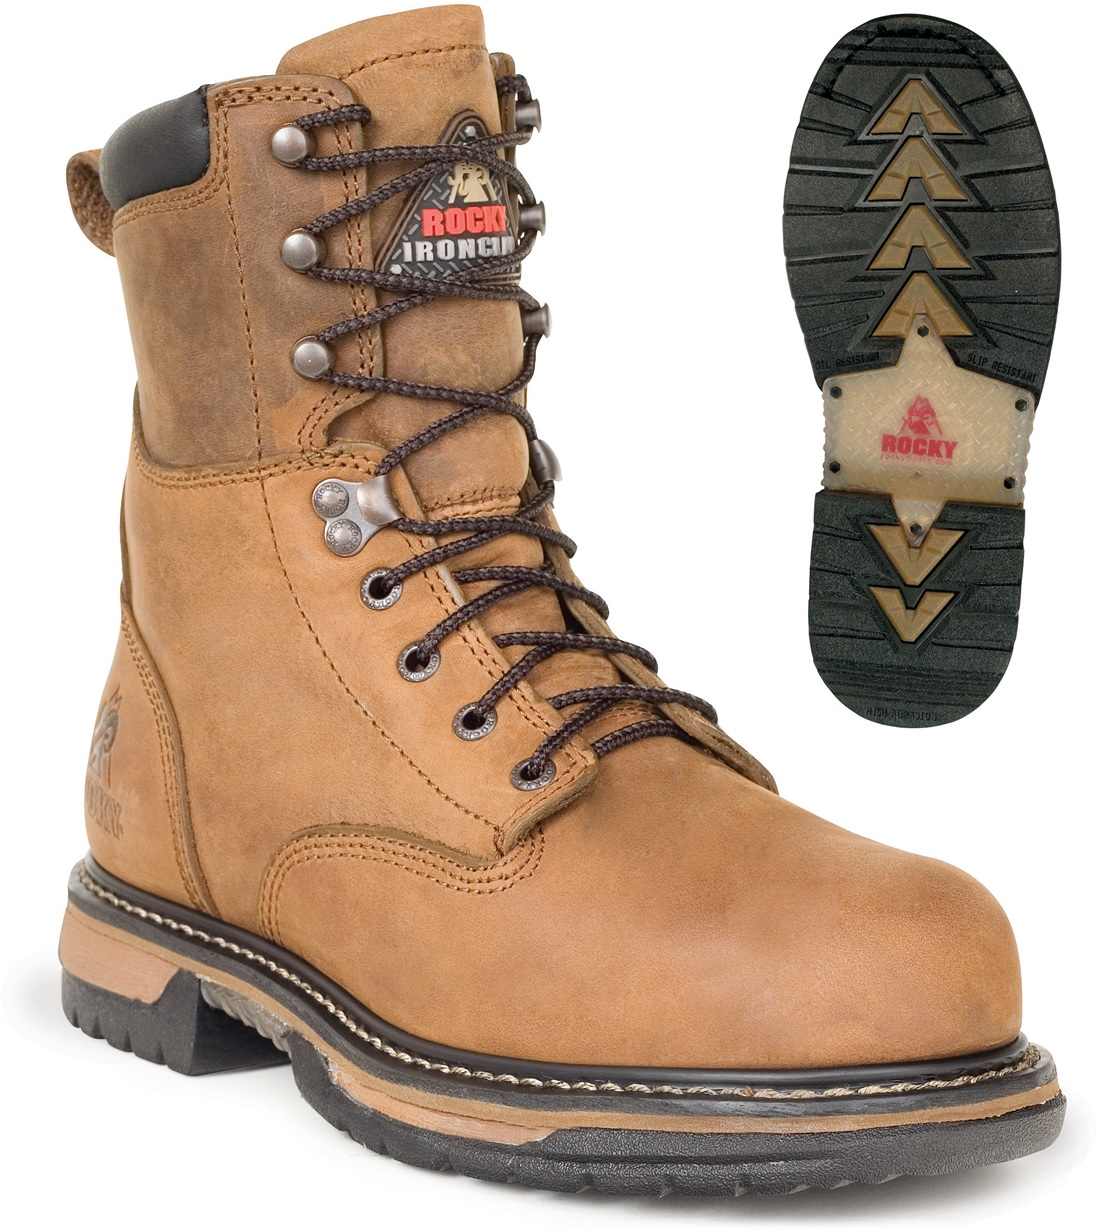 Boots For Work H7lqdt3T